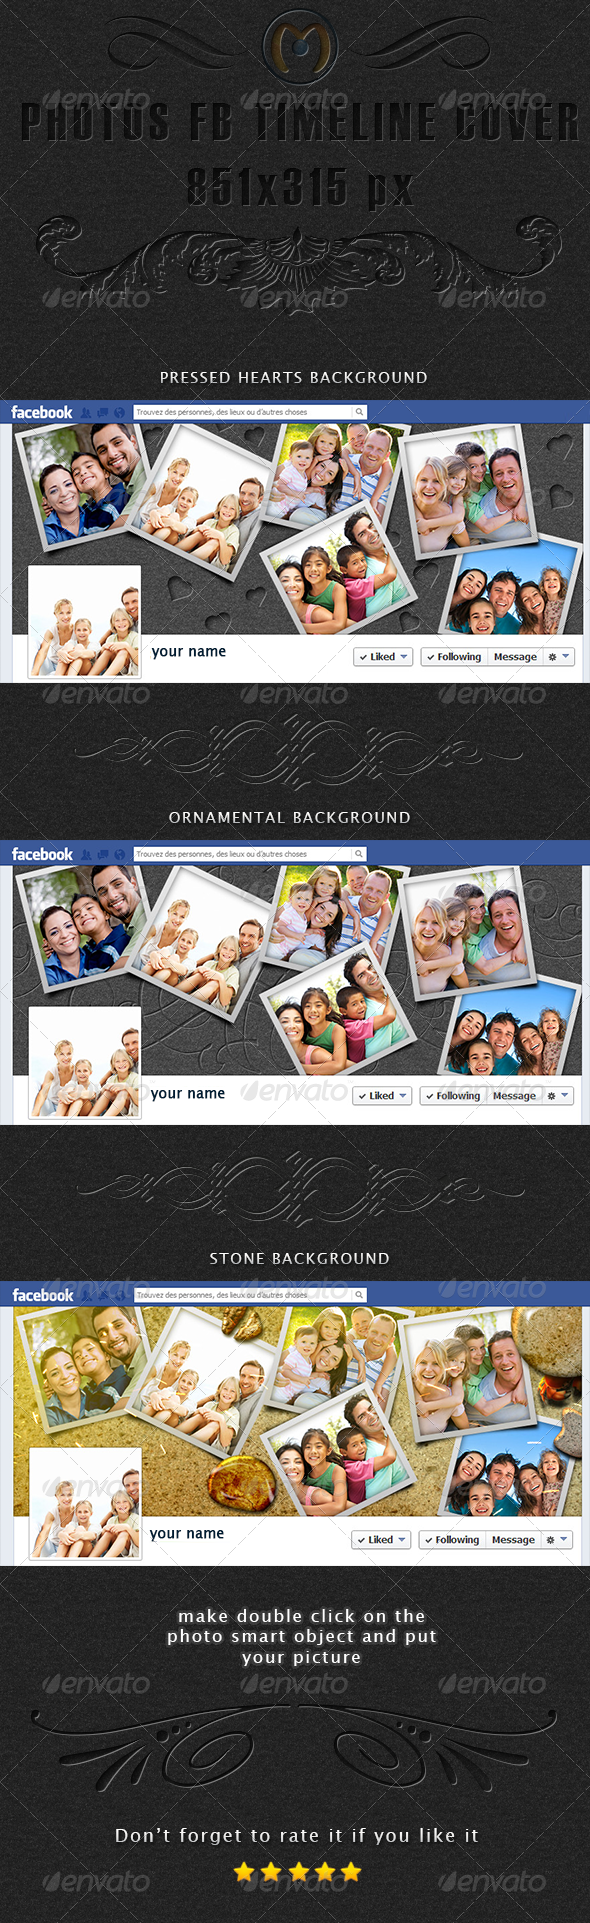 Photos Facebook Timeline Cover - Facebook Timeline Covers Social Media